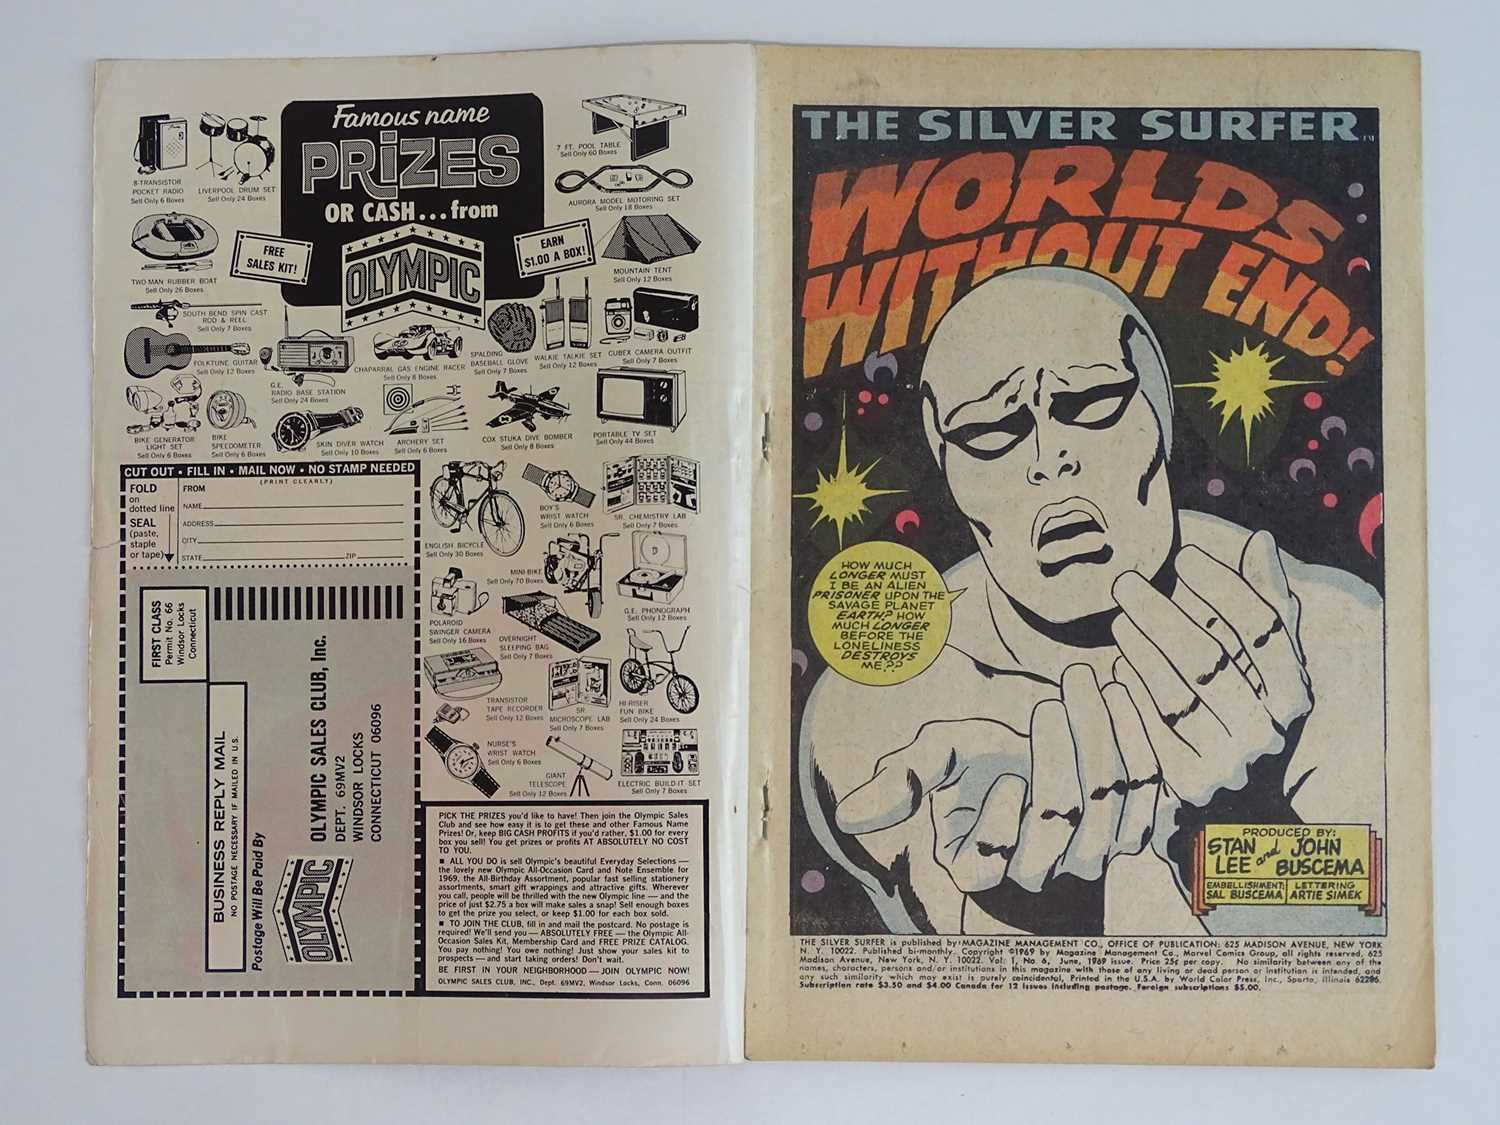 """SILVER SURFER #6 - (1969 - MARVEL - UK Cover Price) """"Tales of the Watcher"""" backup feature with Syd - Image 3 of 8"""